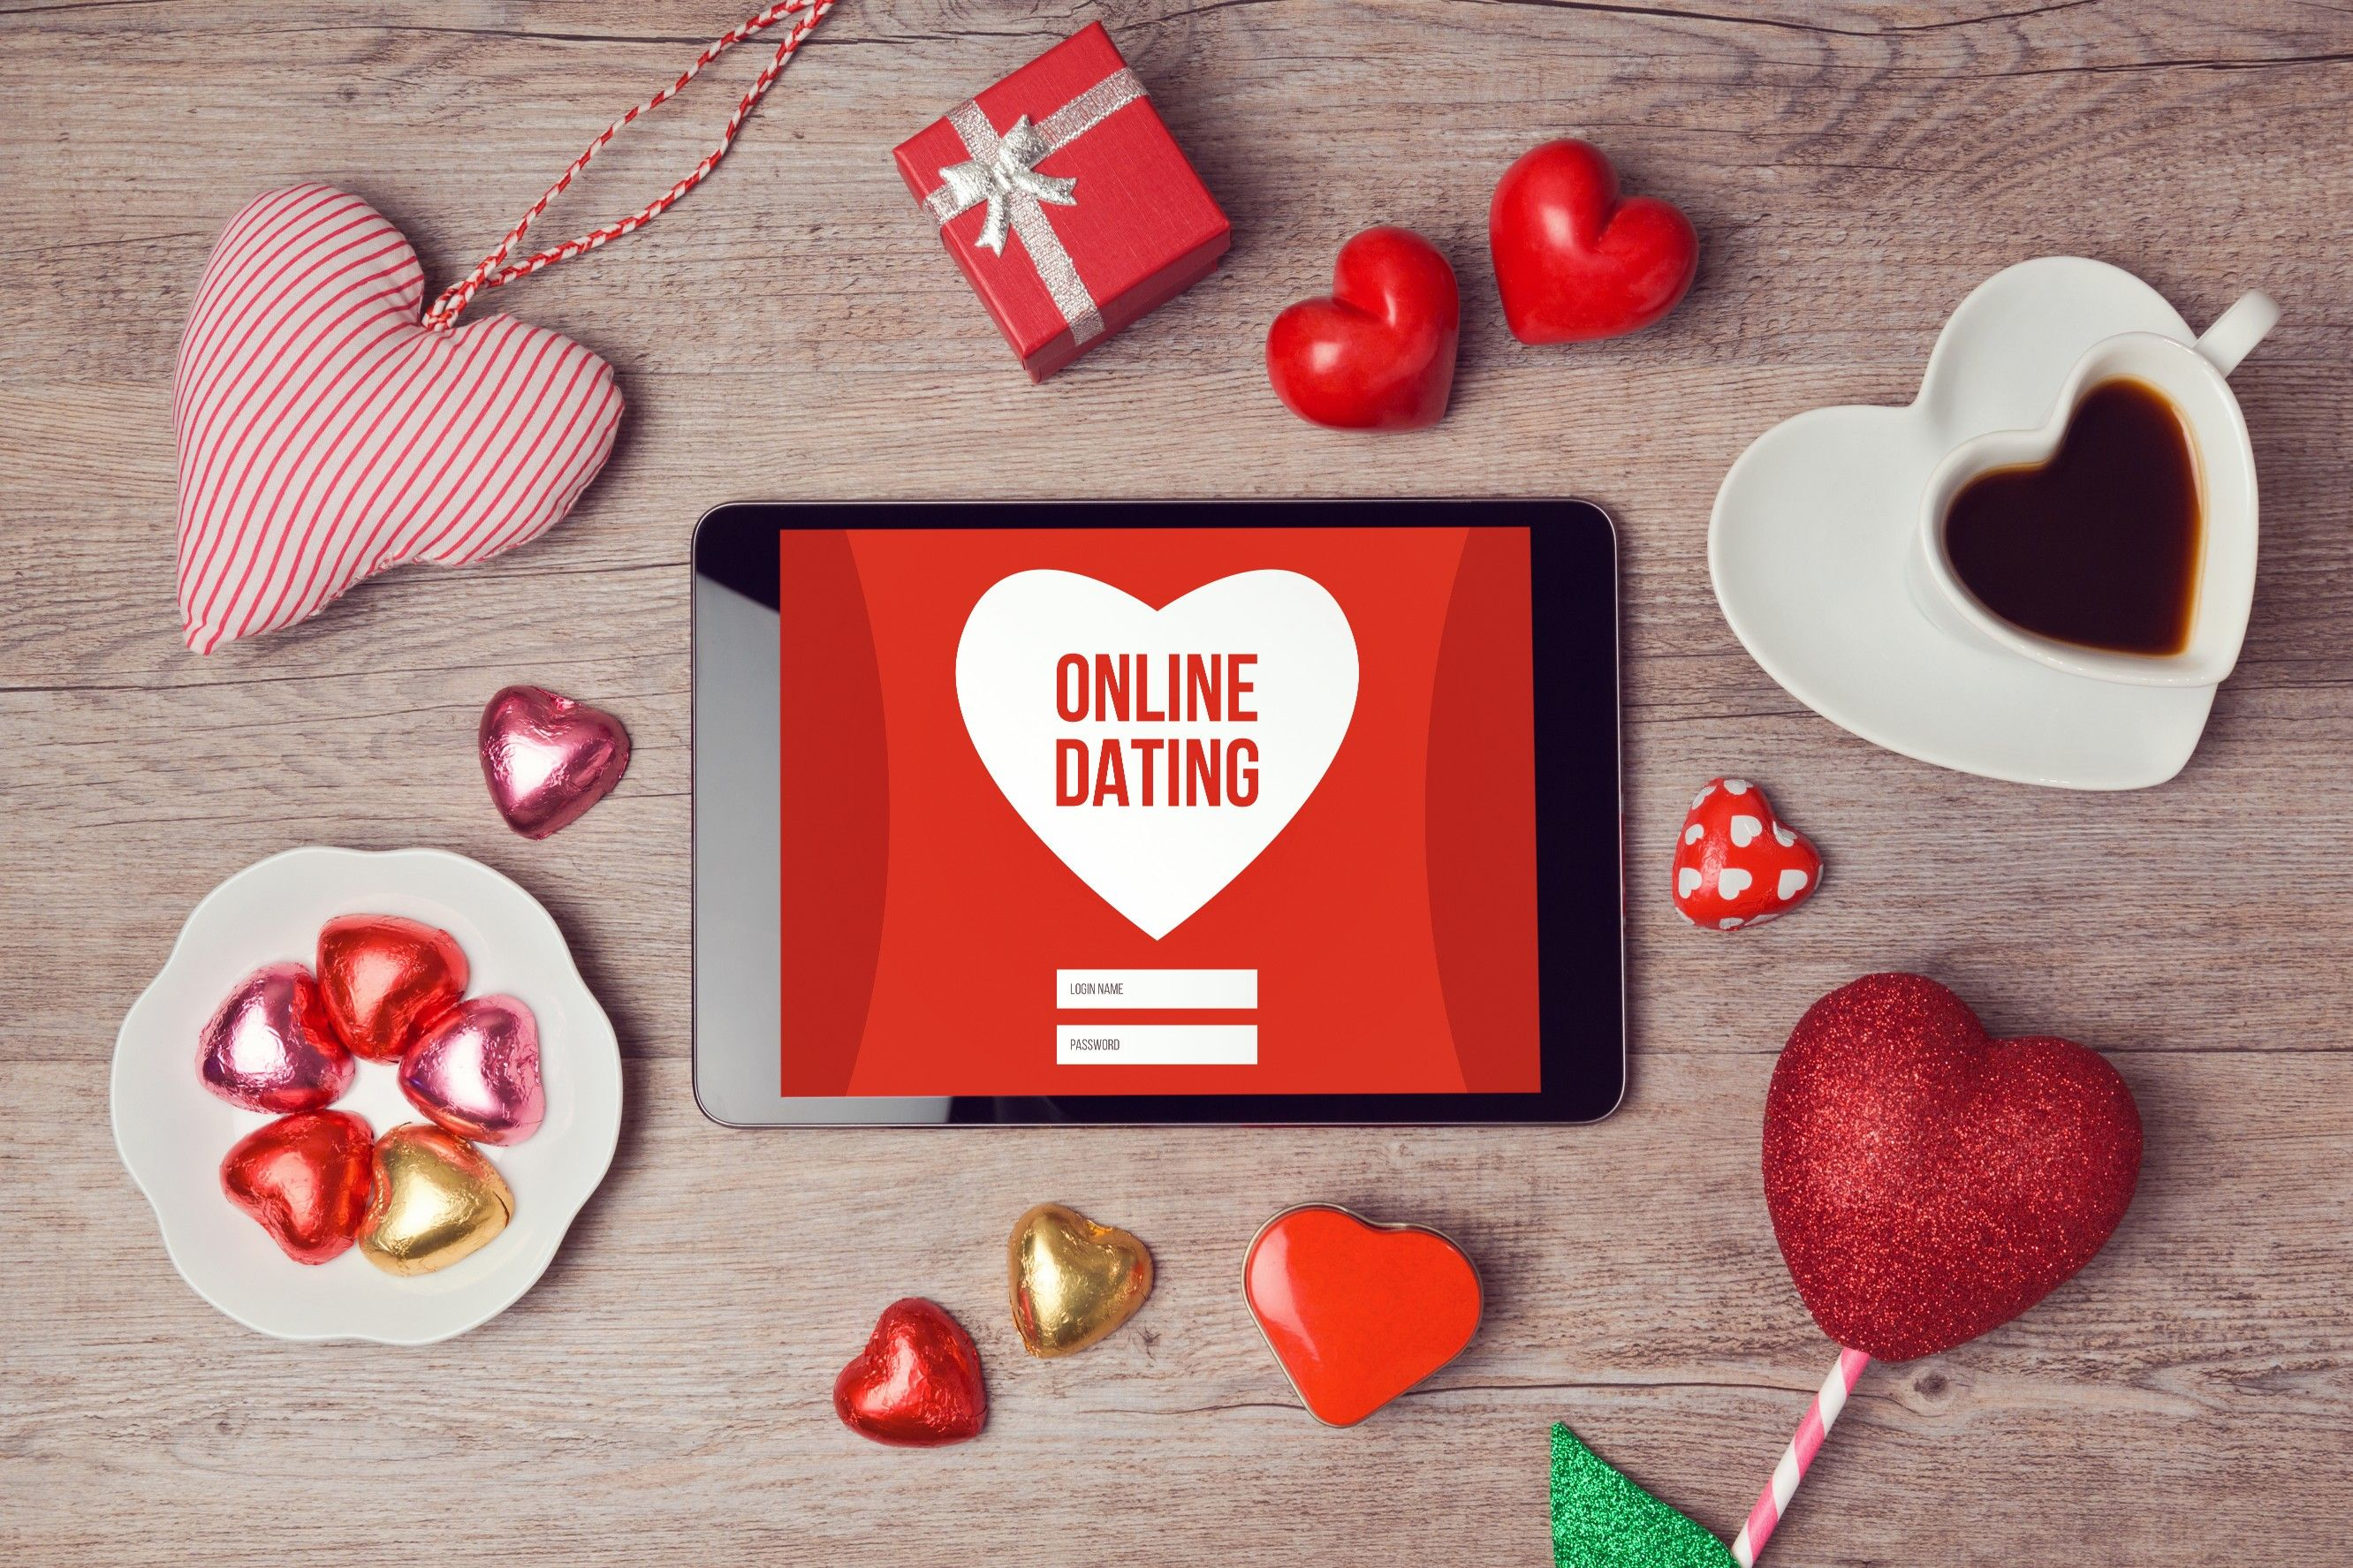 Dating App for iOS & Android Online dating, App